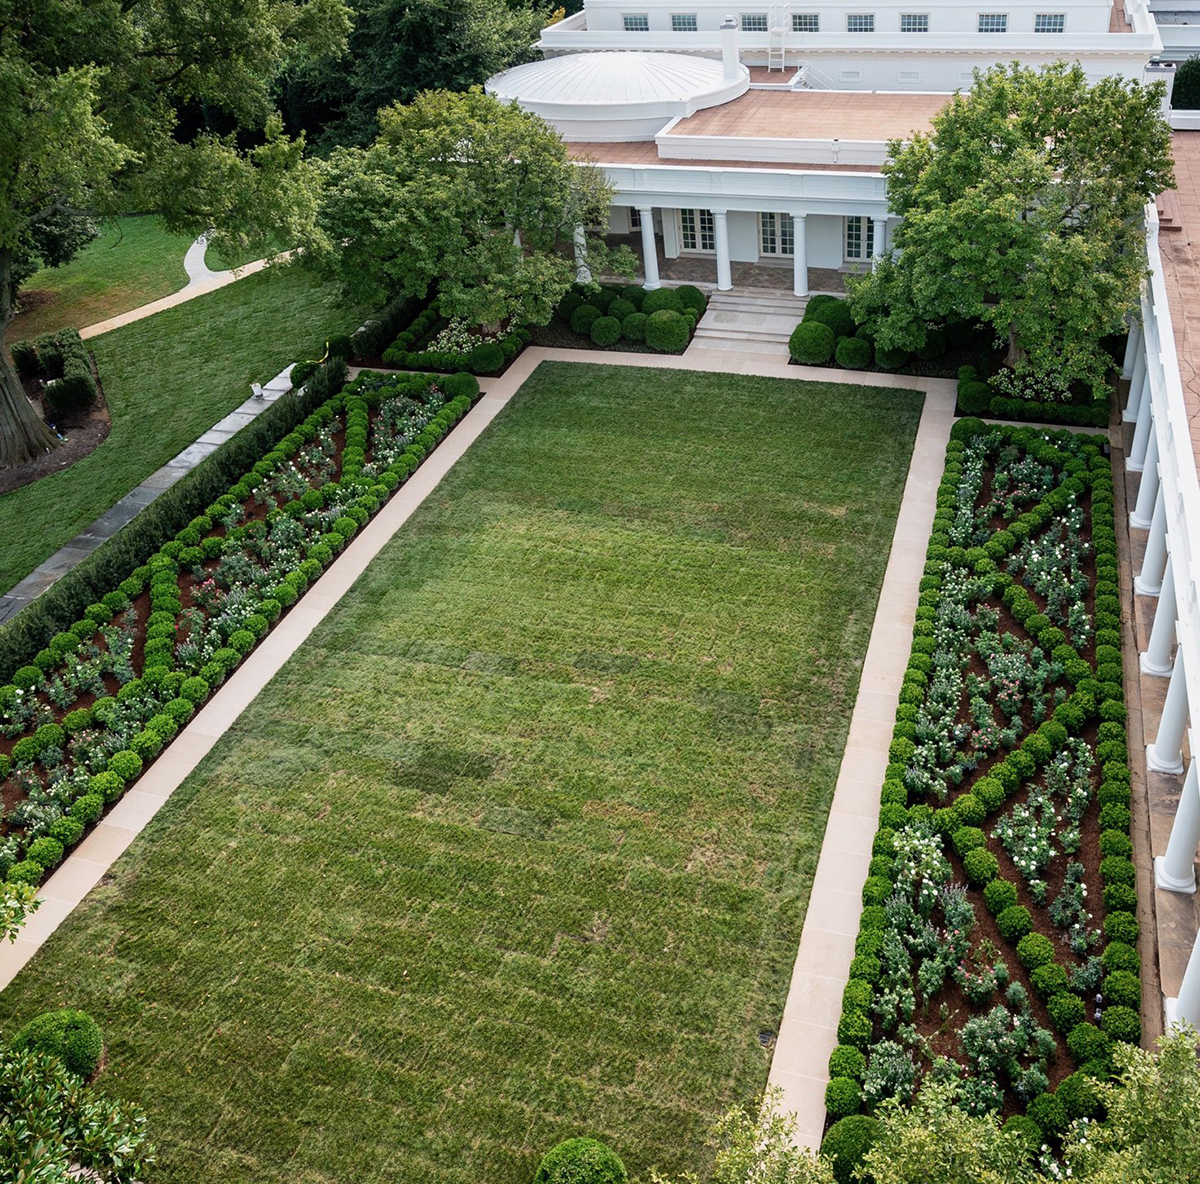 Bird's-eye view of the renovated White House Rose Garden with NewGen Independence® boxwood parterre hedges and 'Green Beauty' boxwood 'cloud effect' podium plantingsPhoto by White House Photo Office